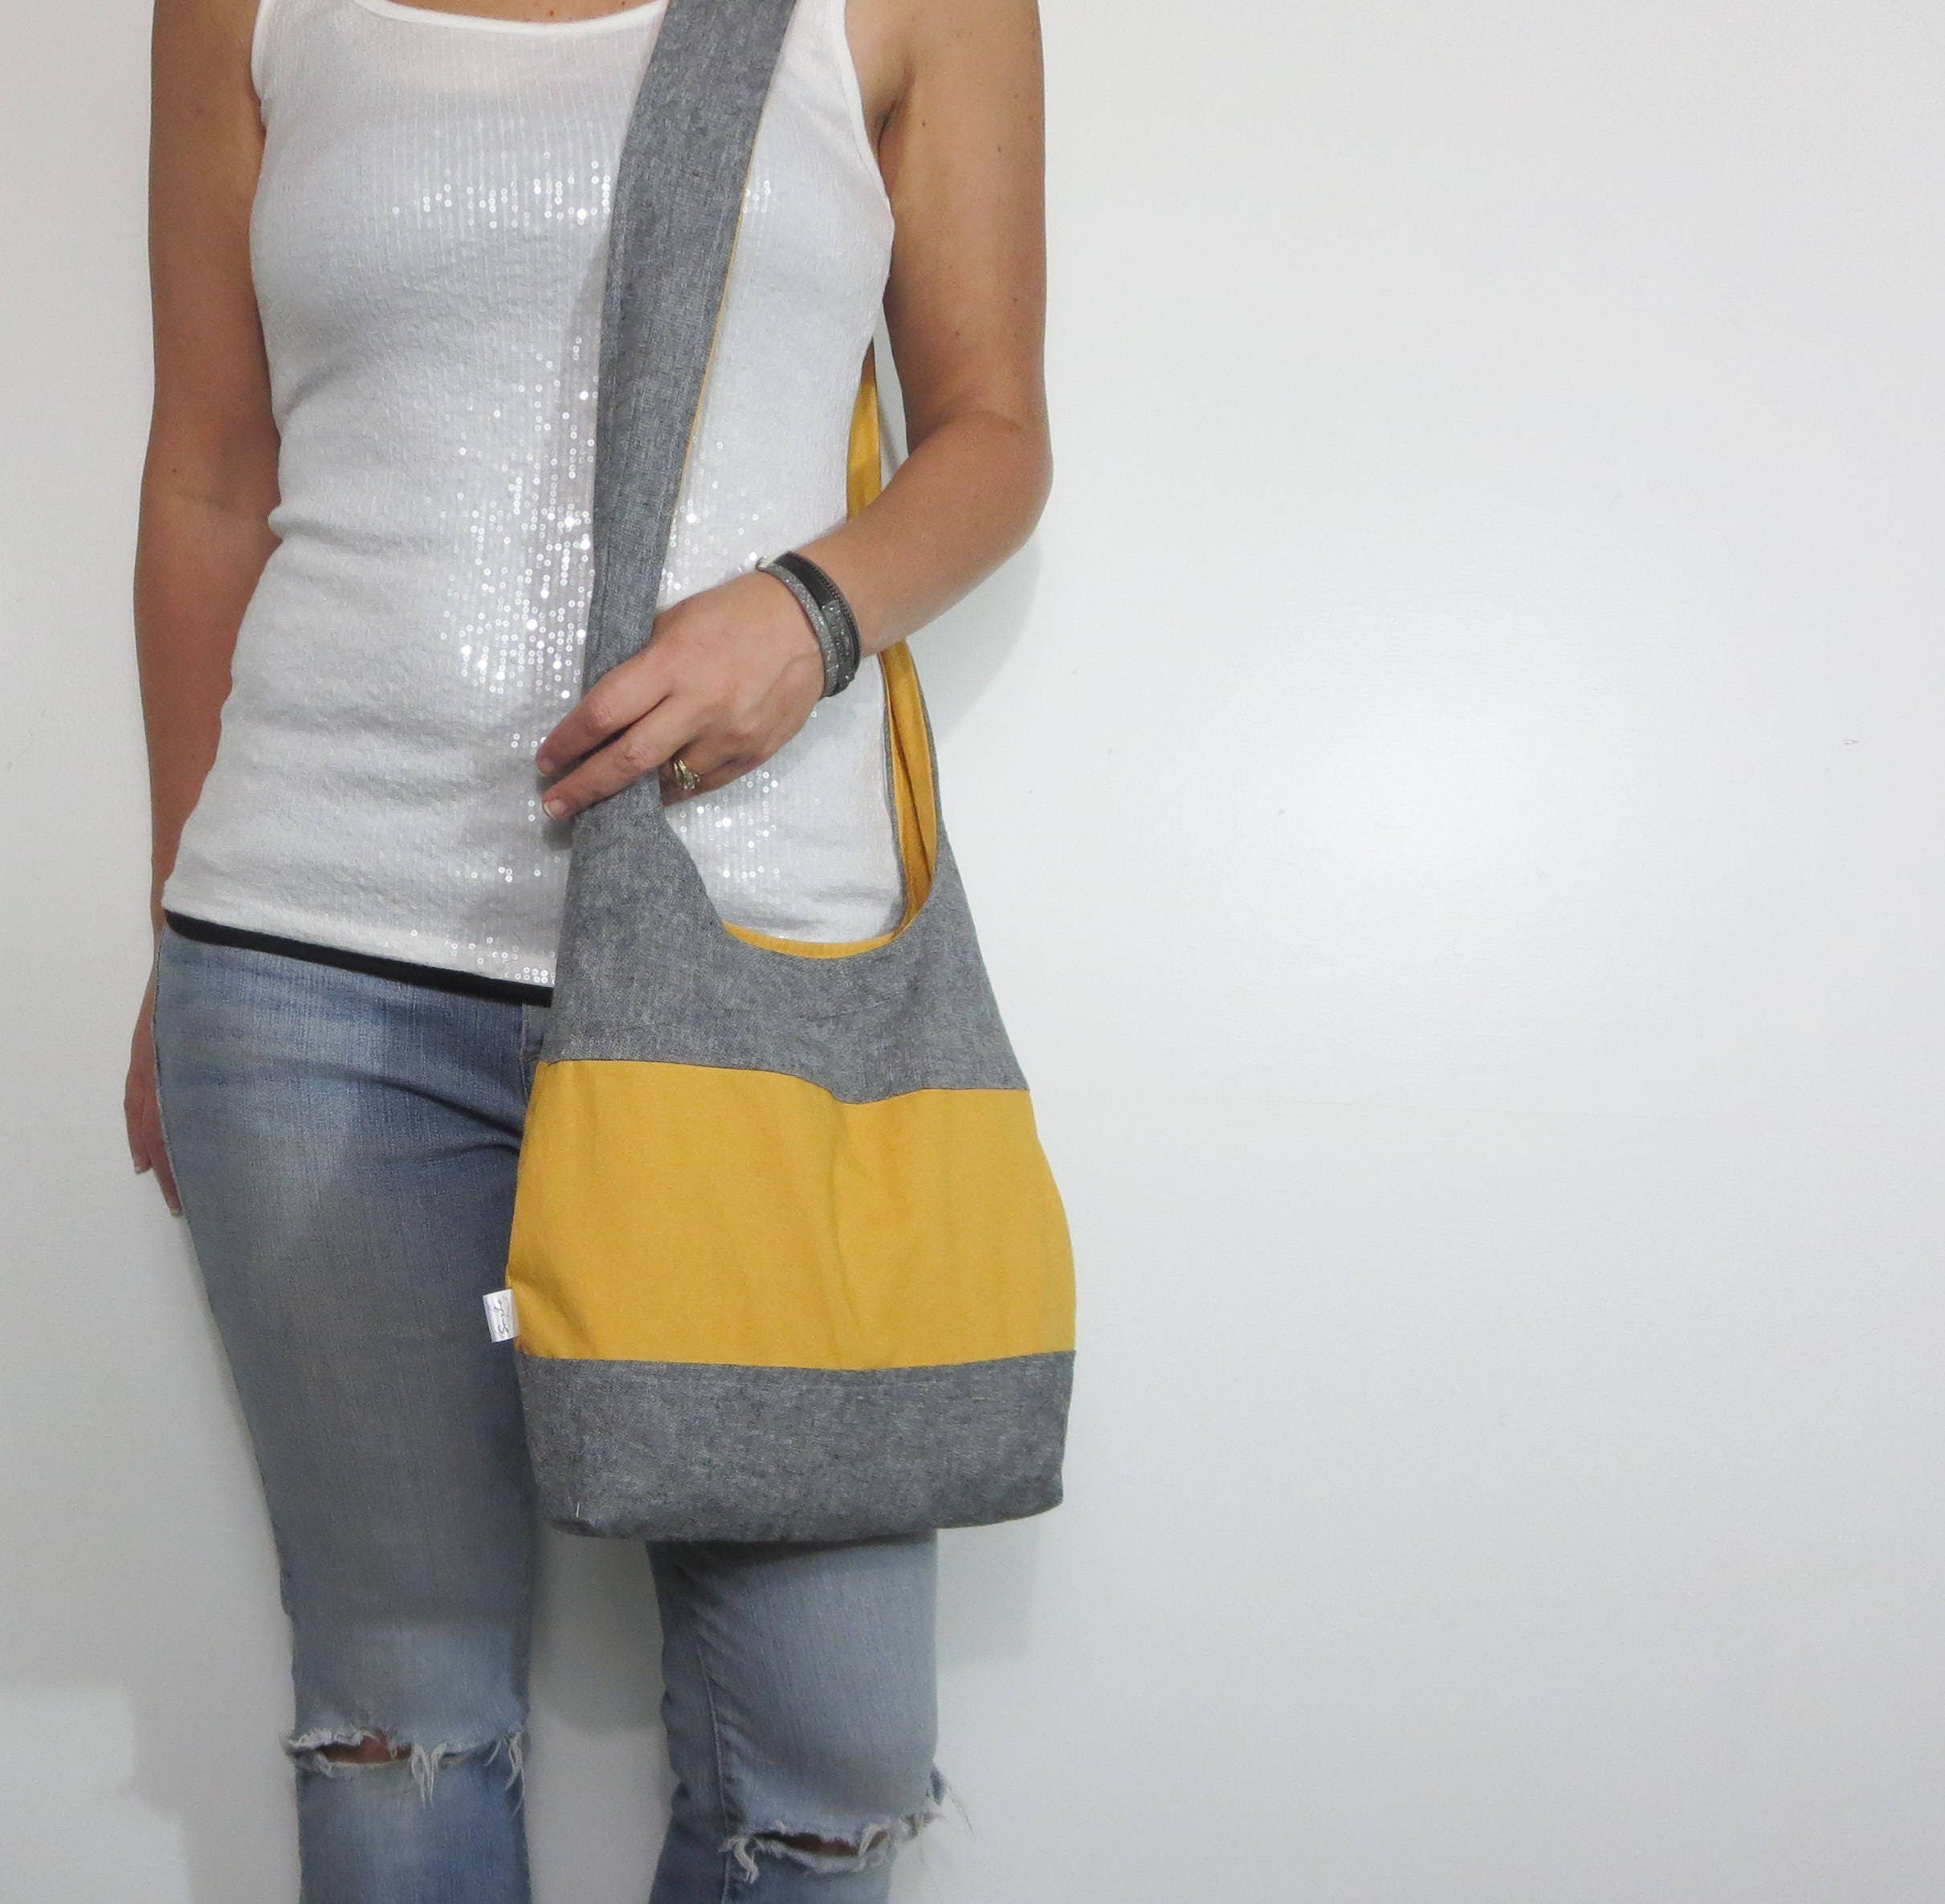 d813cb1dbc17 Color block hobo bag. Design your own large purse or small